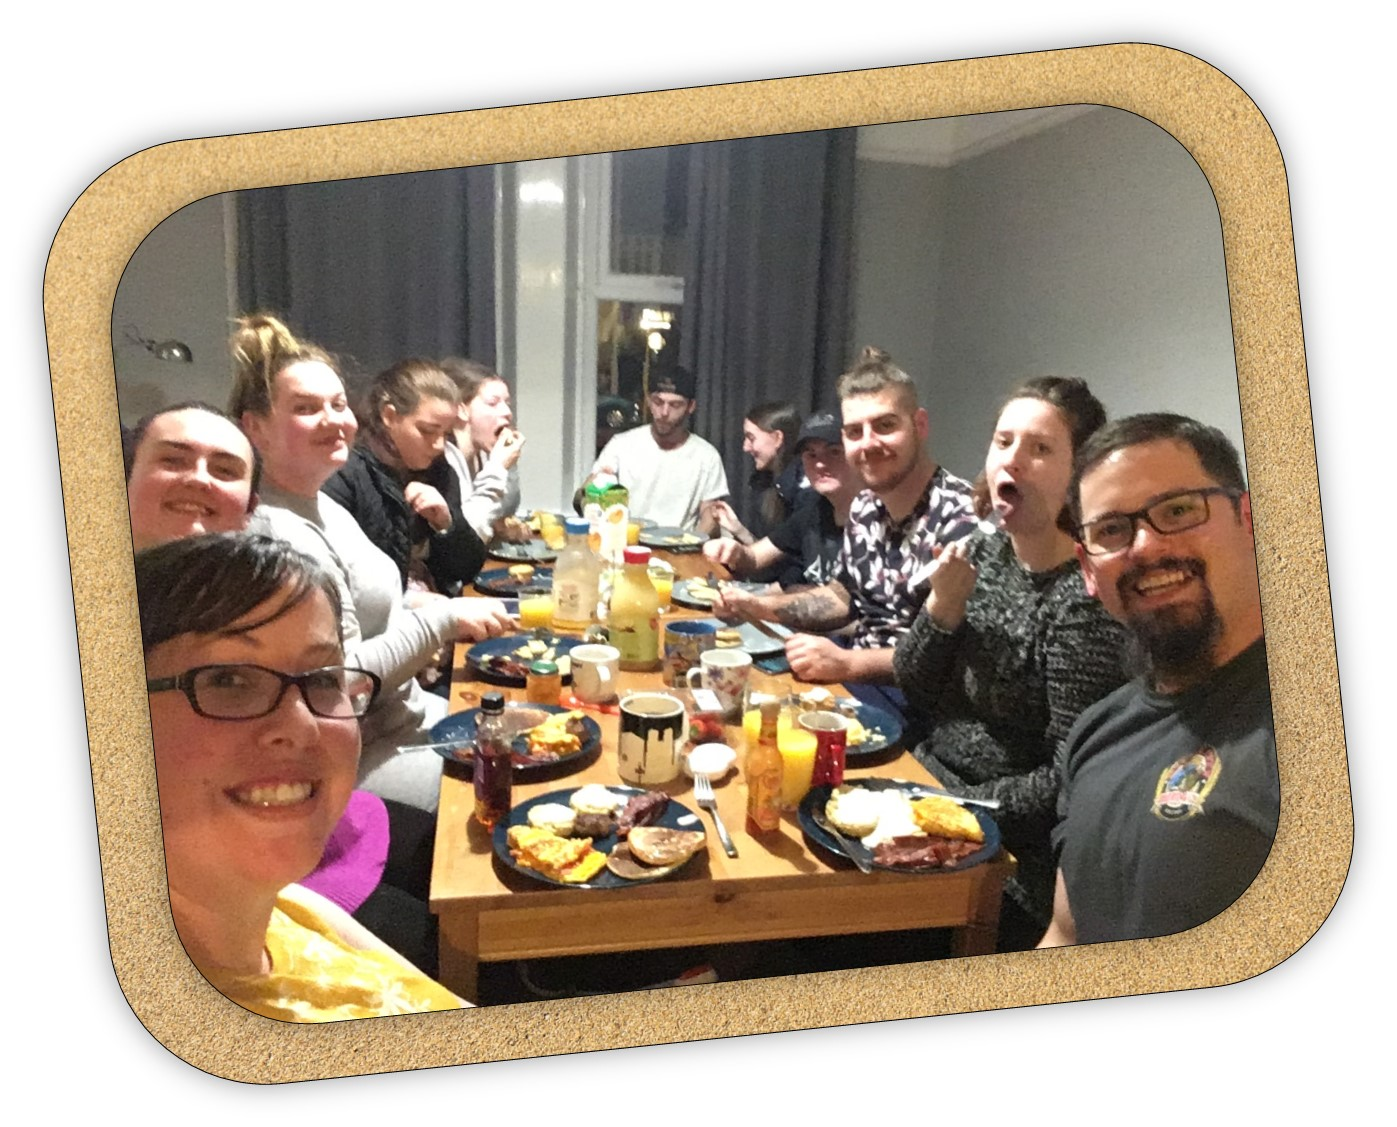 uk-young-adults-eating-together-framed